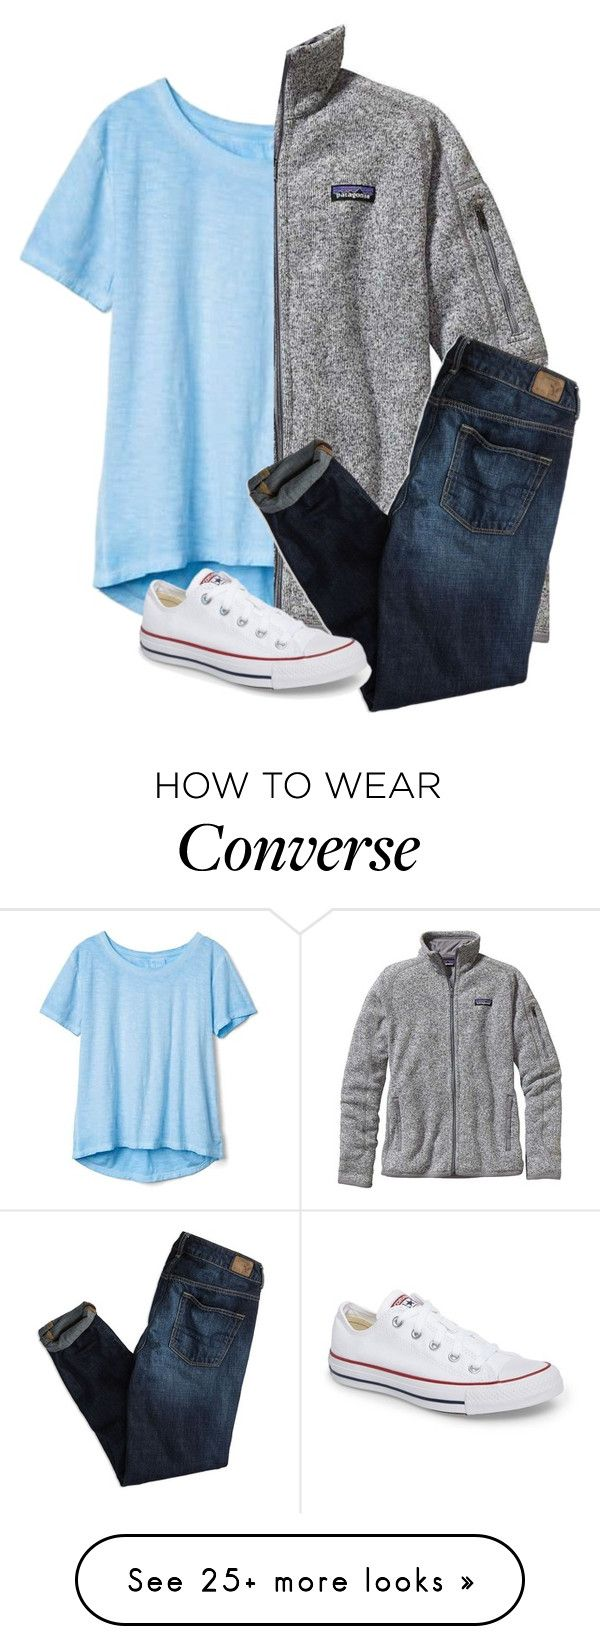 """Untitled #188"" by lhnlila on Polyvore featuring Gap, Patagonia, American Eagle Outfitters and Converse"